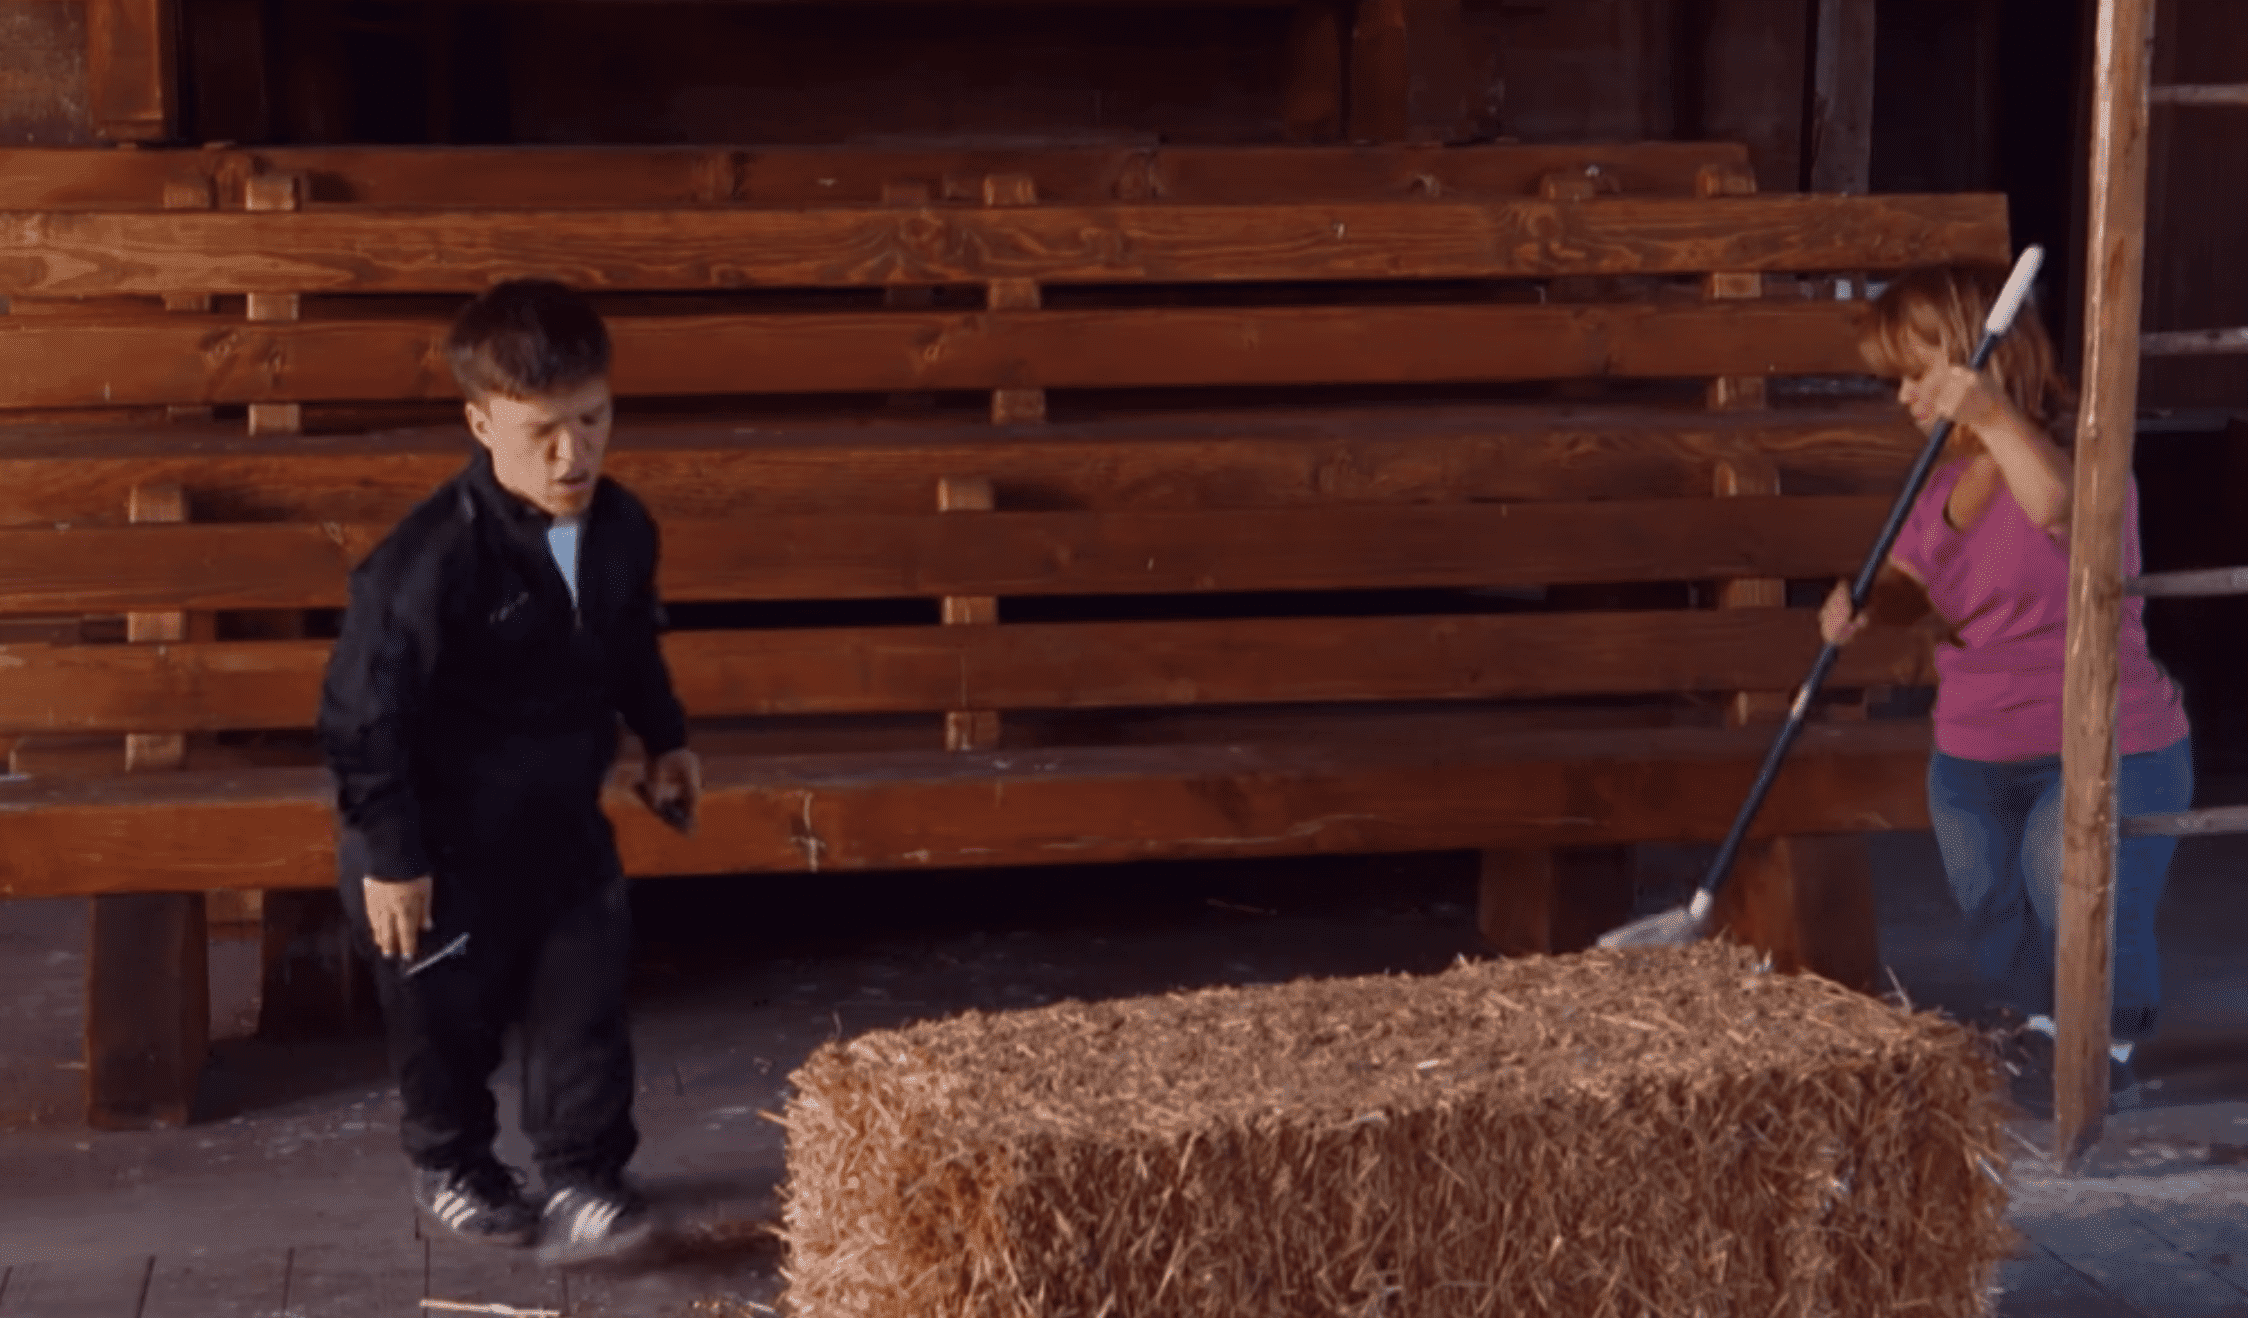 Amy and Zach clean up the barn in preparation for Jackson's birthday | Photo: Facebook/Little People, Big World